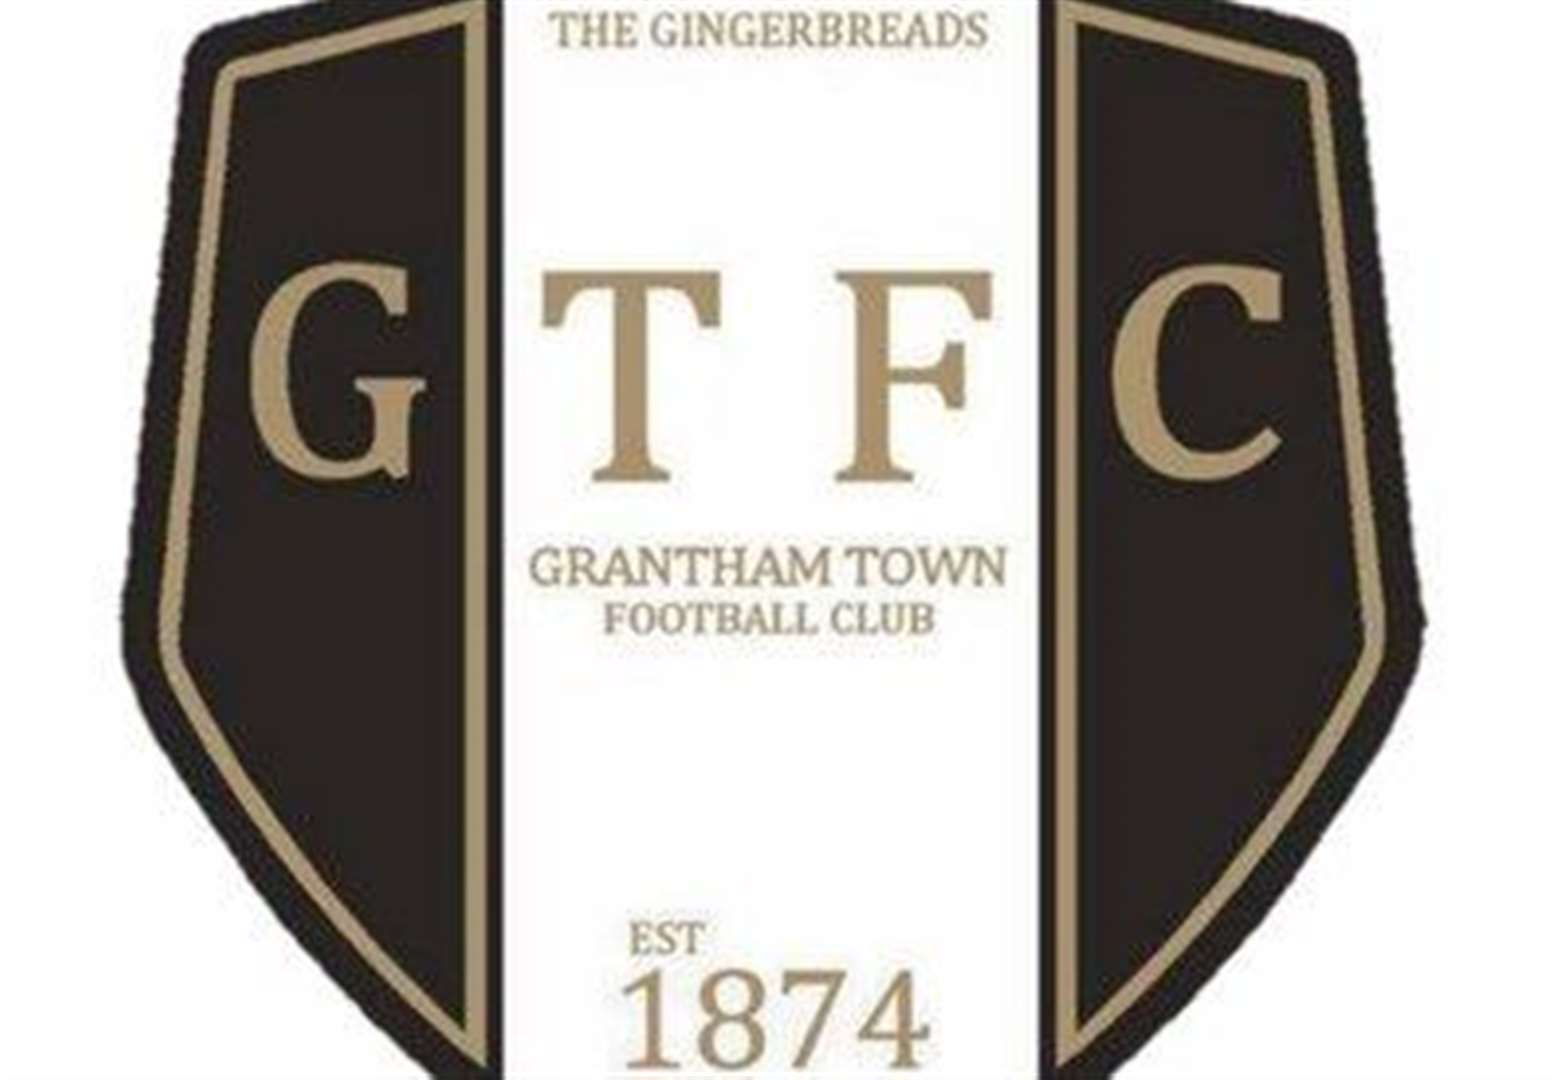 This week's Gingerbreads lucky lotto winners